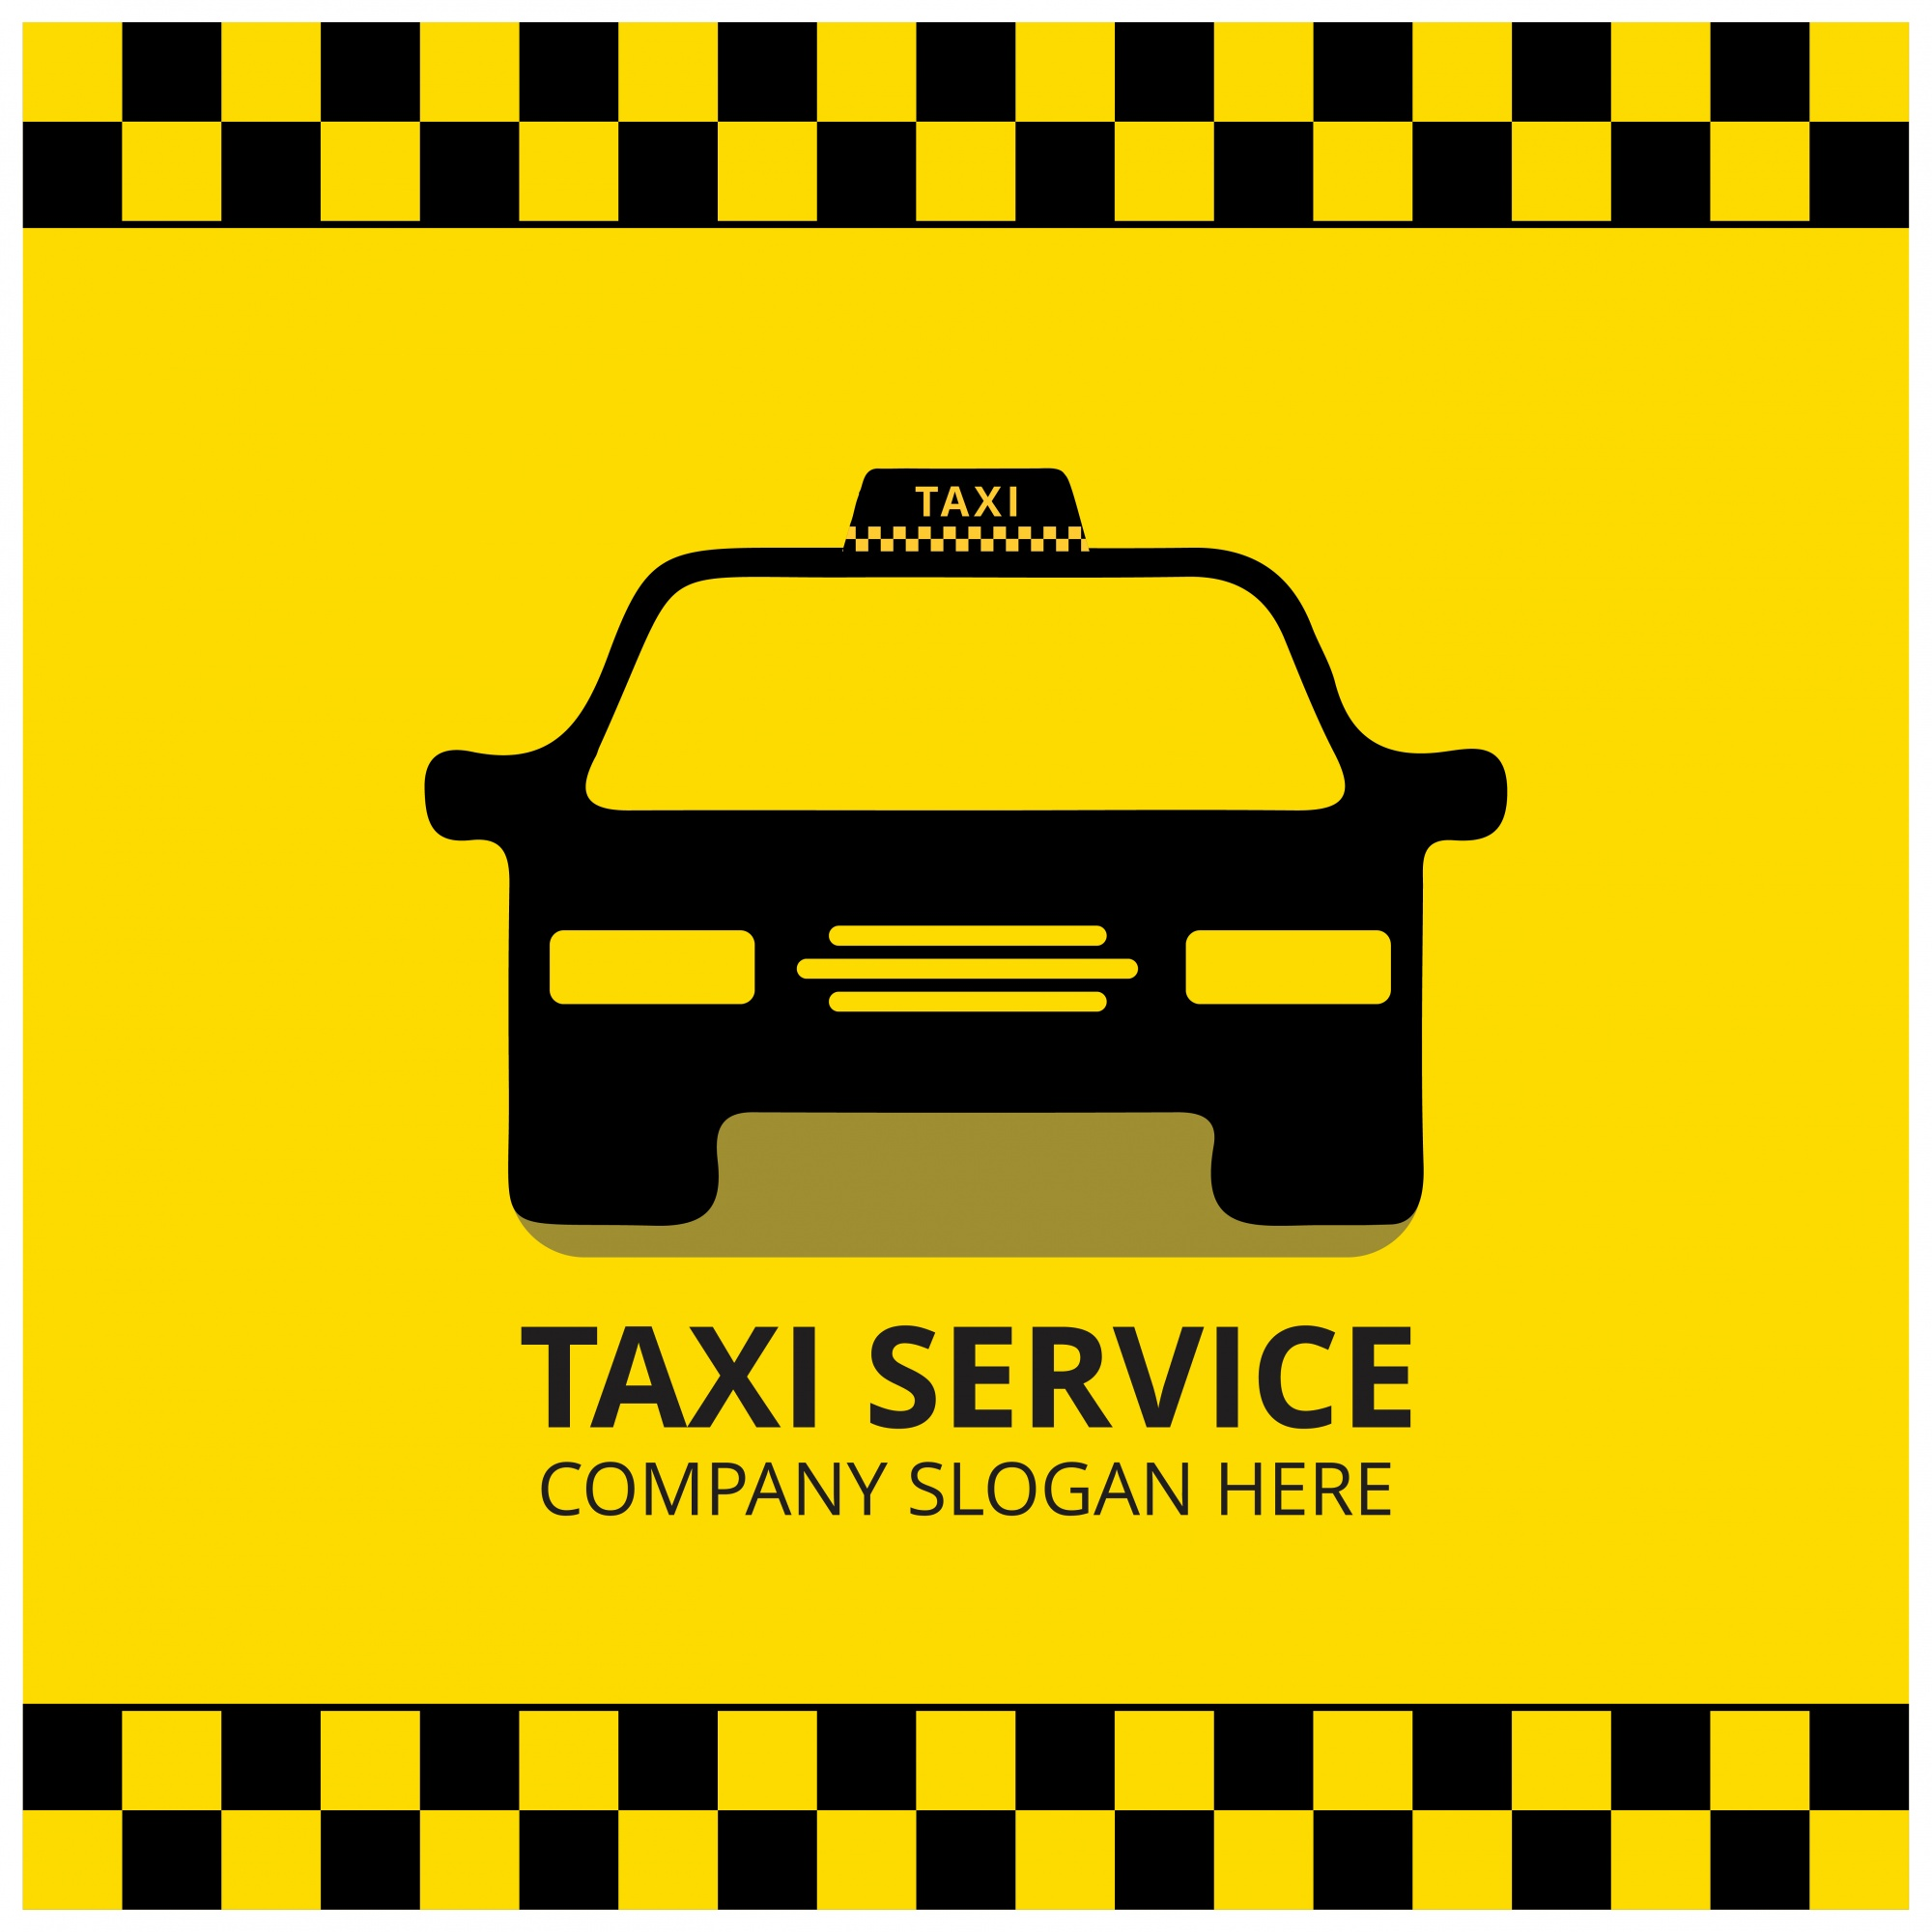 Taxi logotype design template